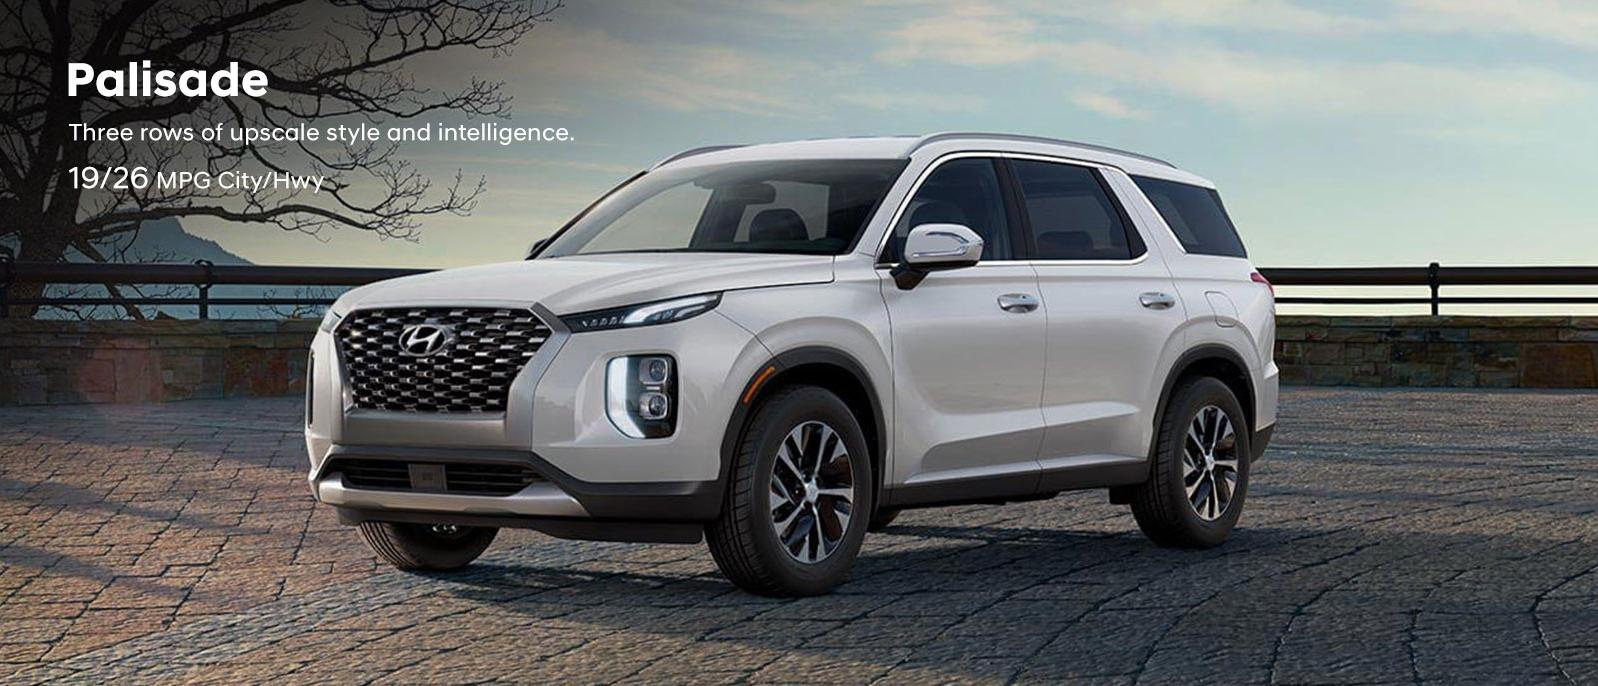 2020 Hyundai Palisade with 3 rows of upscale style and intelligence